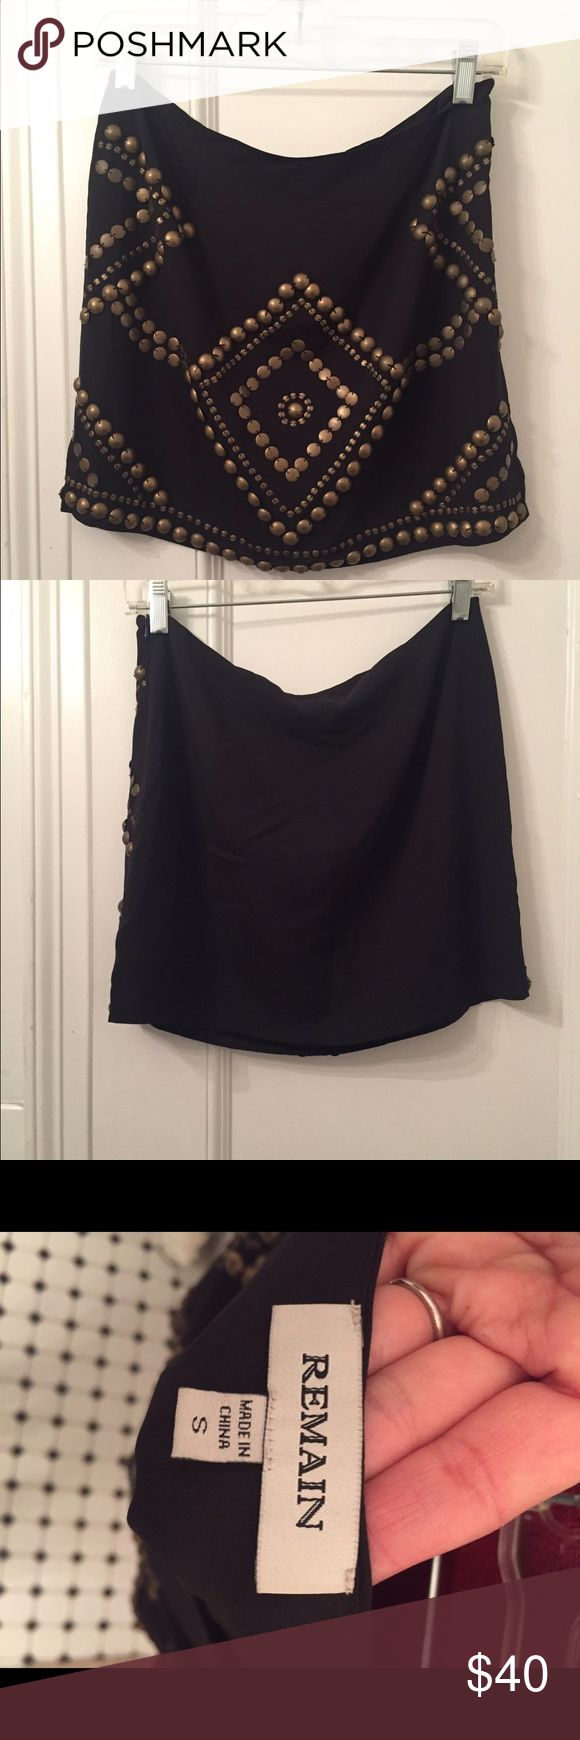 Lack embellished mini skirt Size Small Super cute black mini skirt with embellished. Skirt has a silky feel to it. Perfect for a night out! Skirts Mini